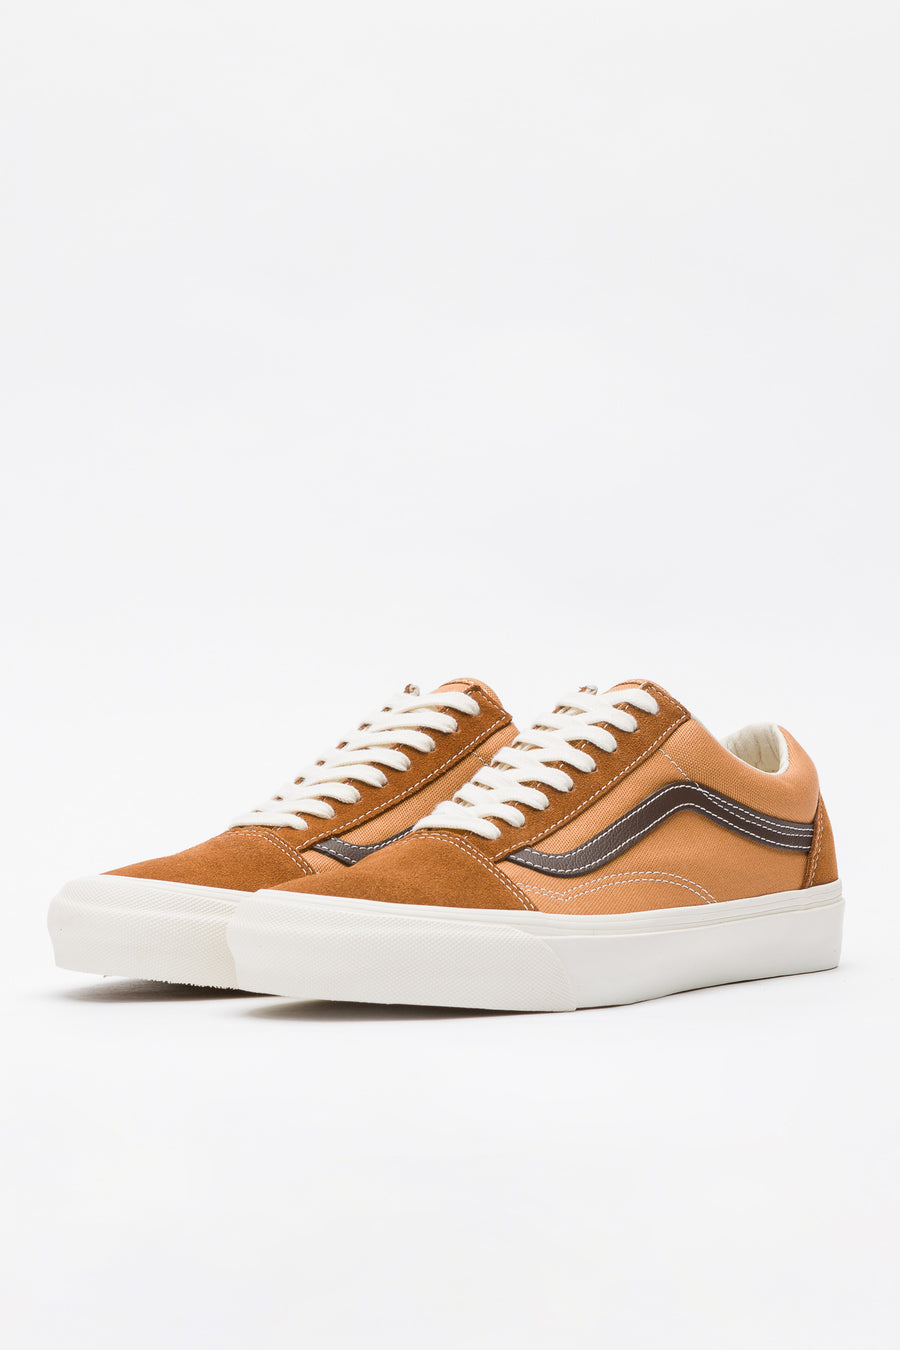 Vans Vault Old Skool LX in Brown - Notre